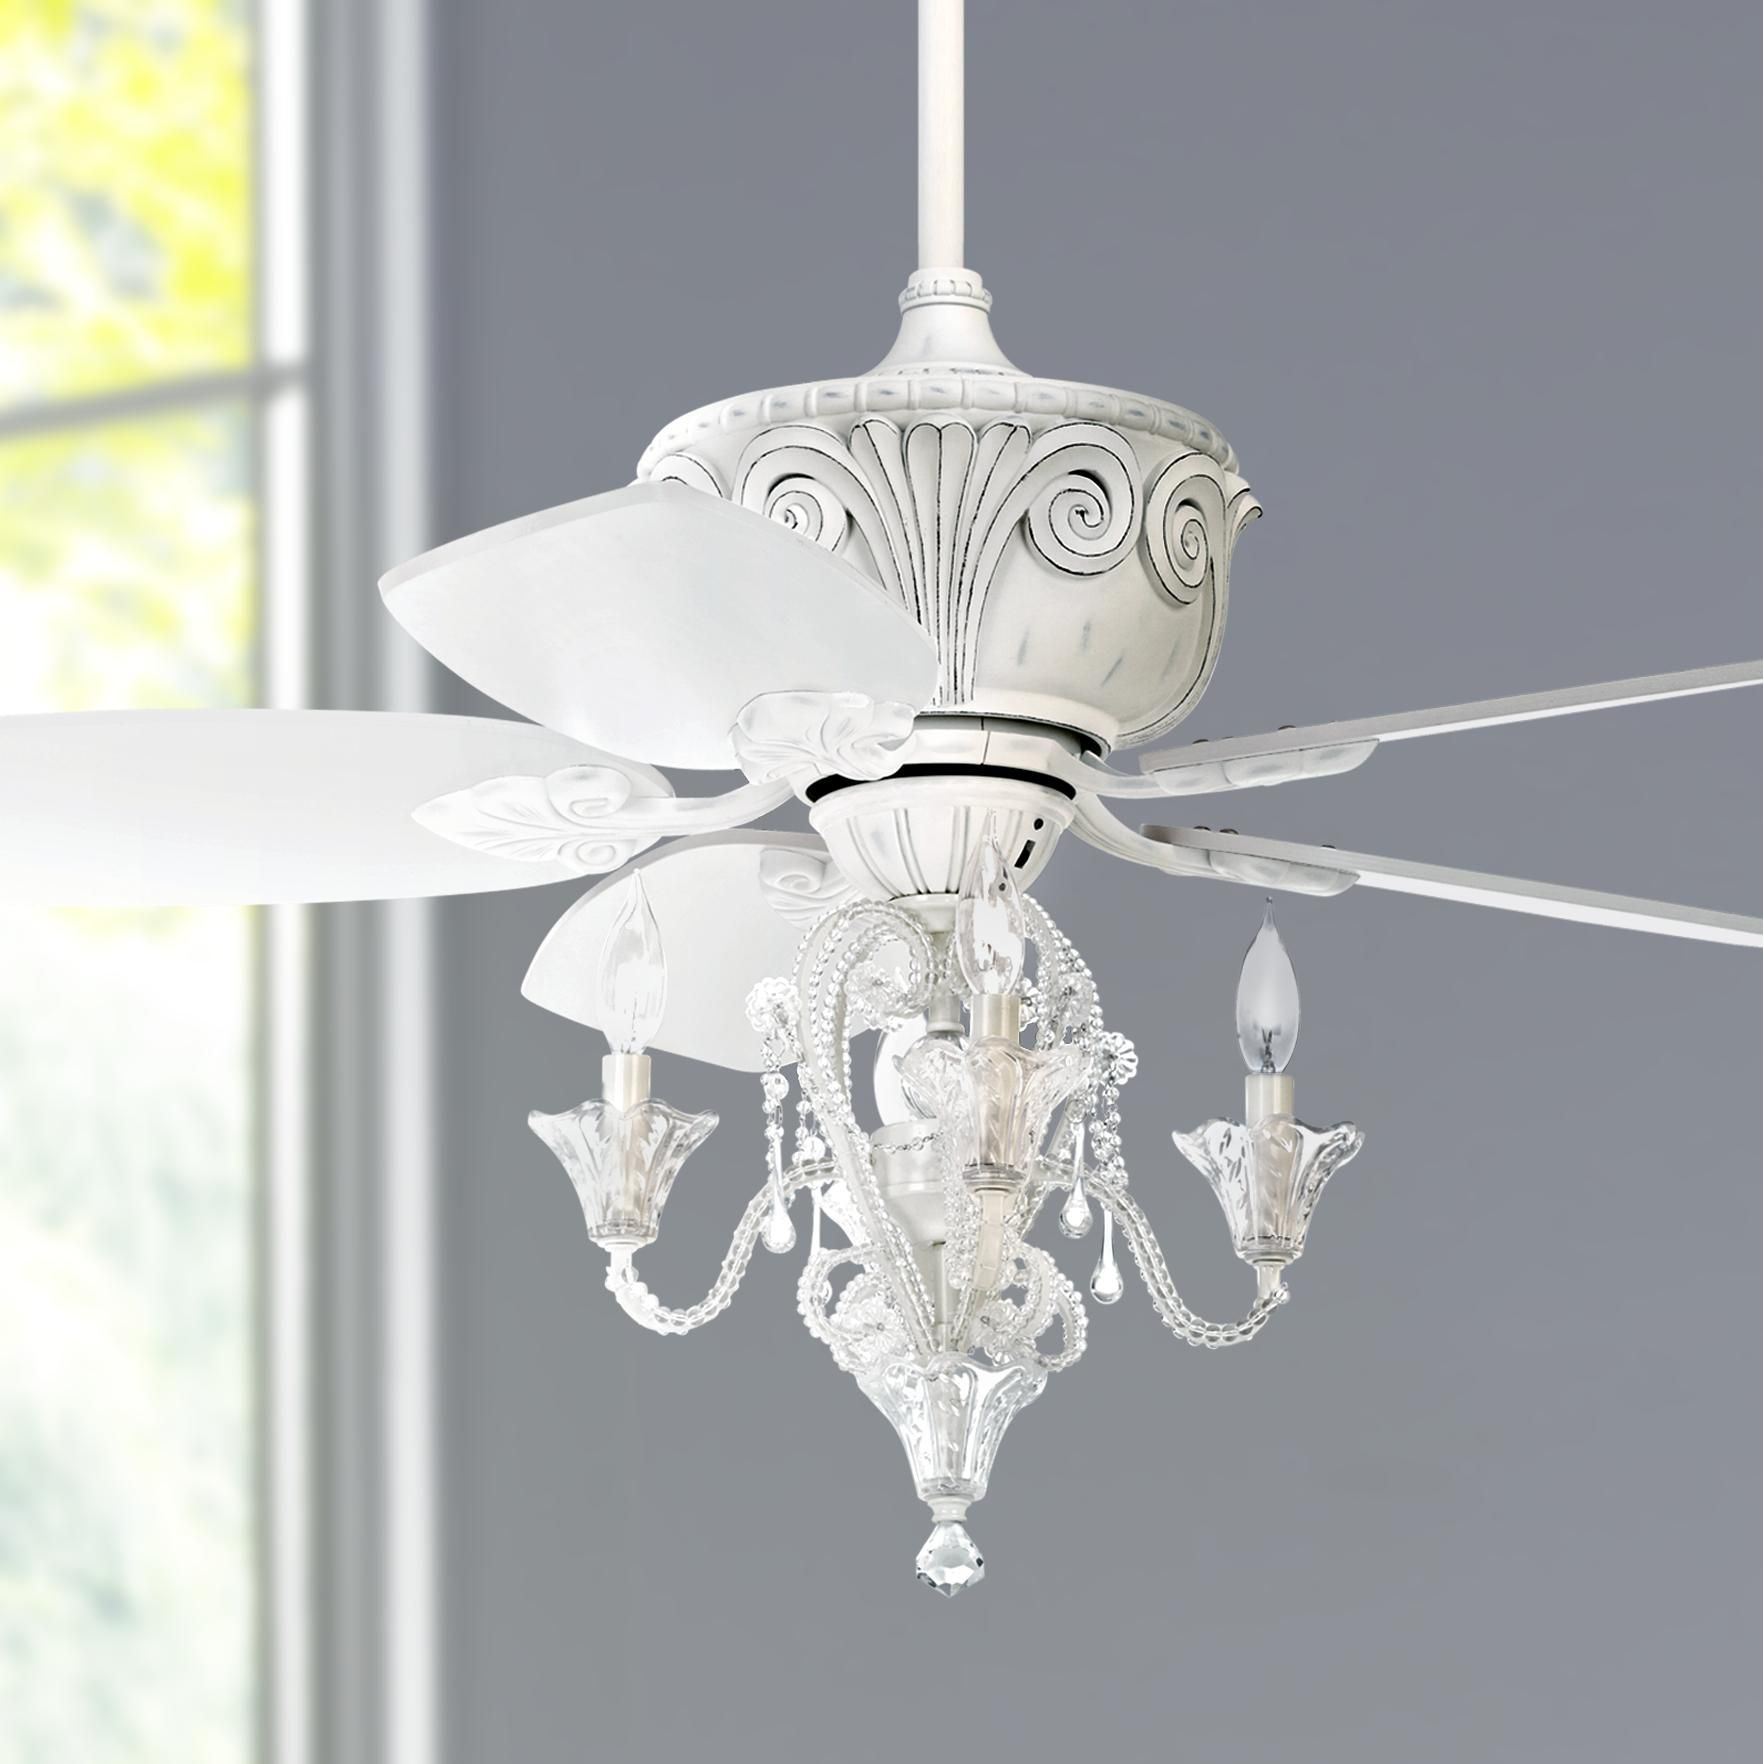 44 casa deville antique white ceiling fan with light white 44 casa deville antique white ceiling fan with light 87534 45955 01464 lamps plus arubaitofo Choice Image